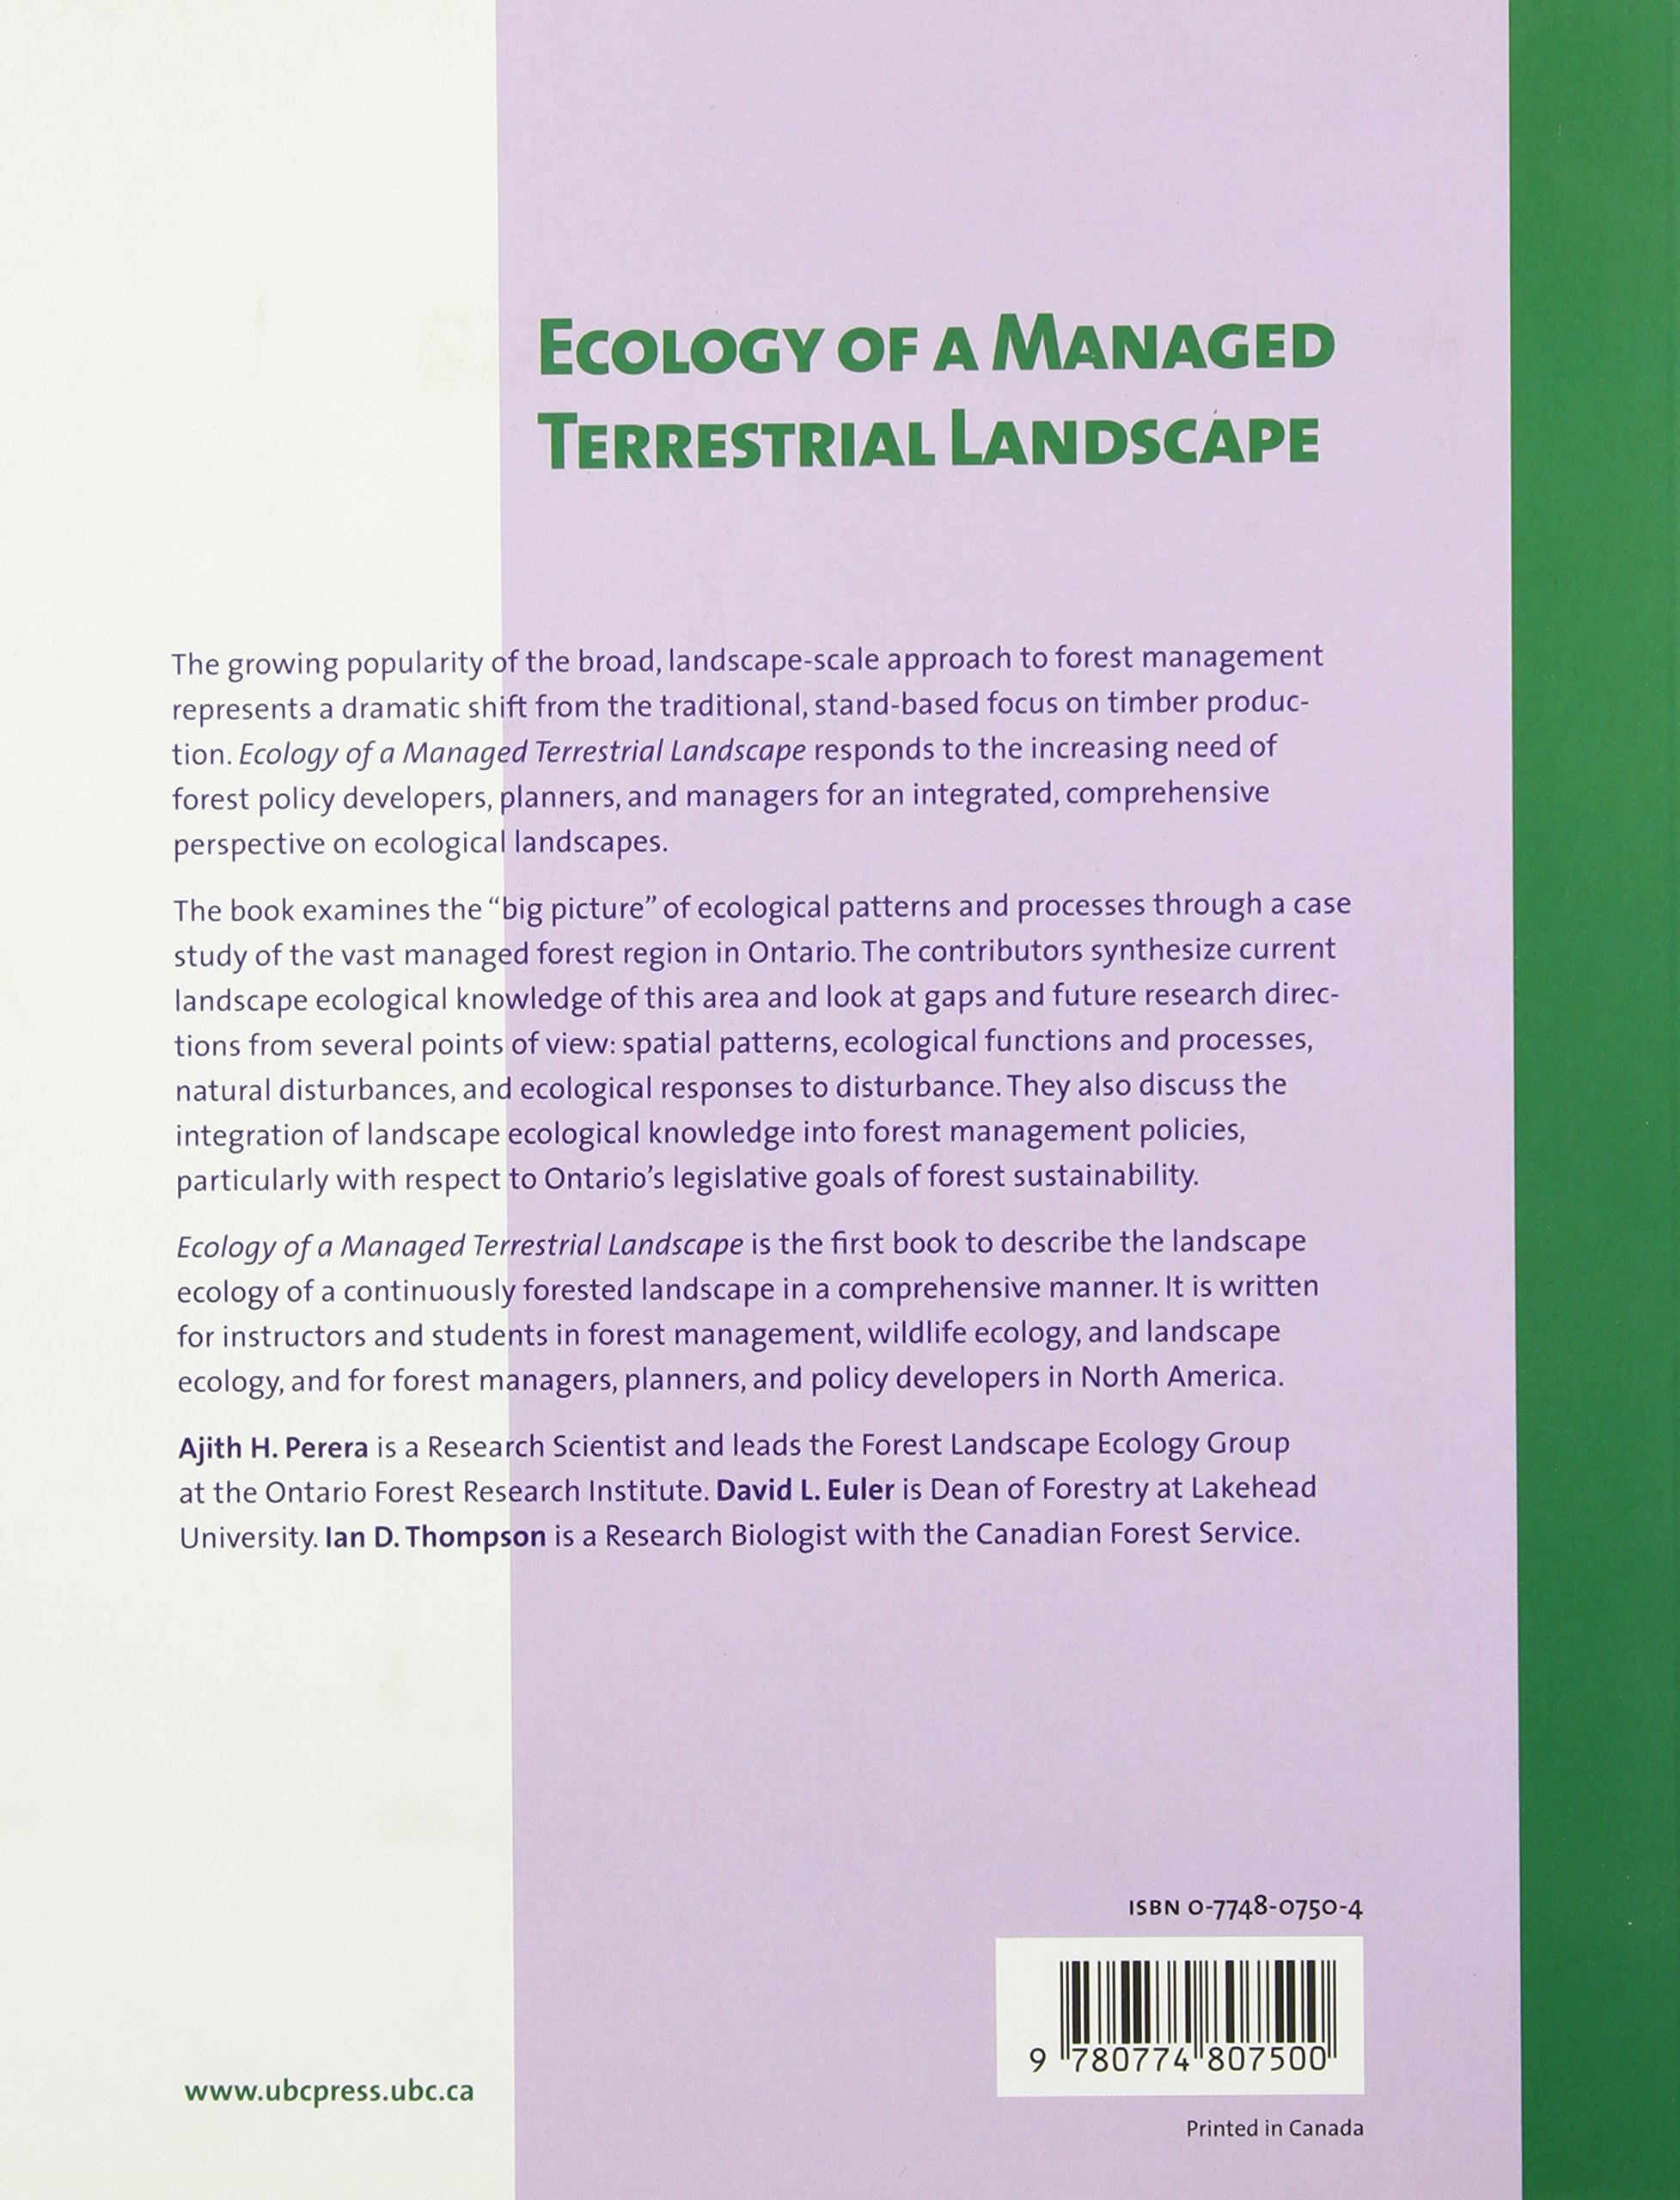 Patterns and Processes of Forest Landscapes in Ontario Ecology of a Managed Terrestrial Landscape